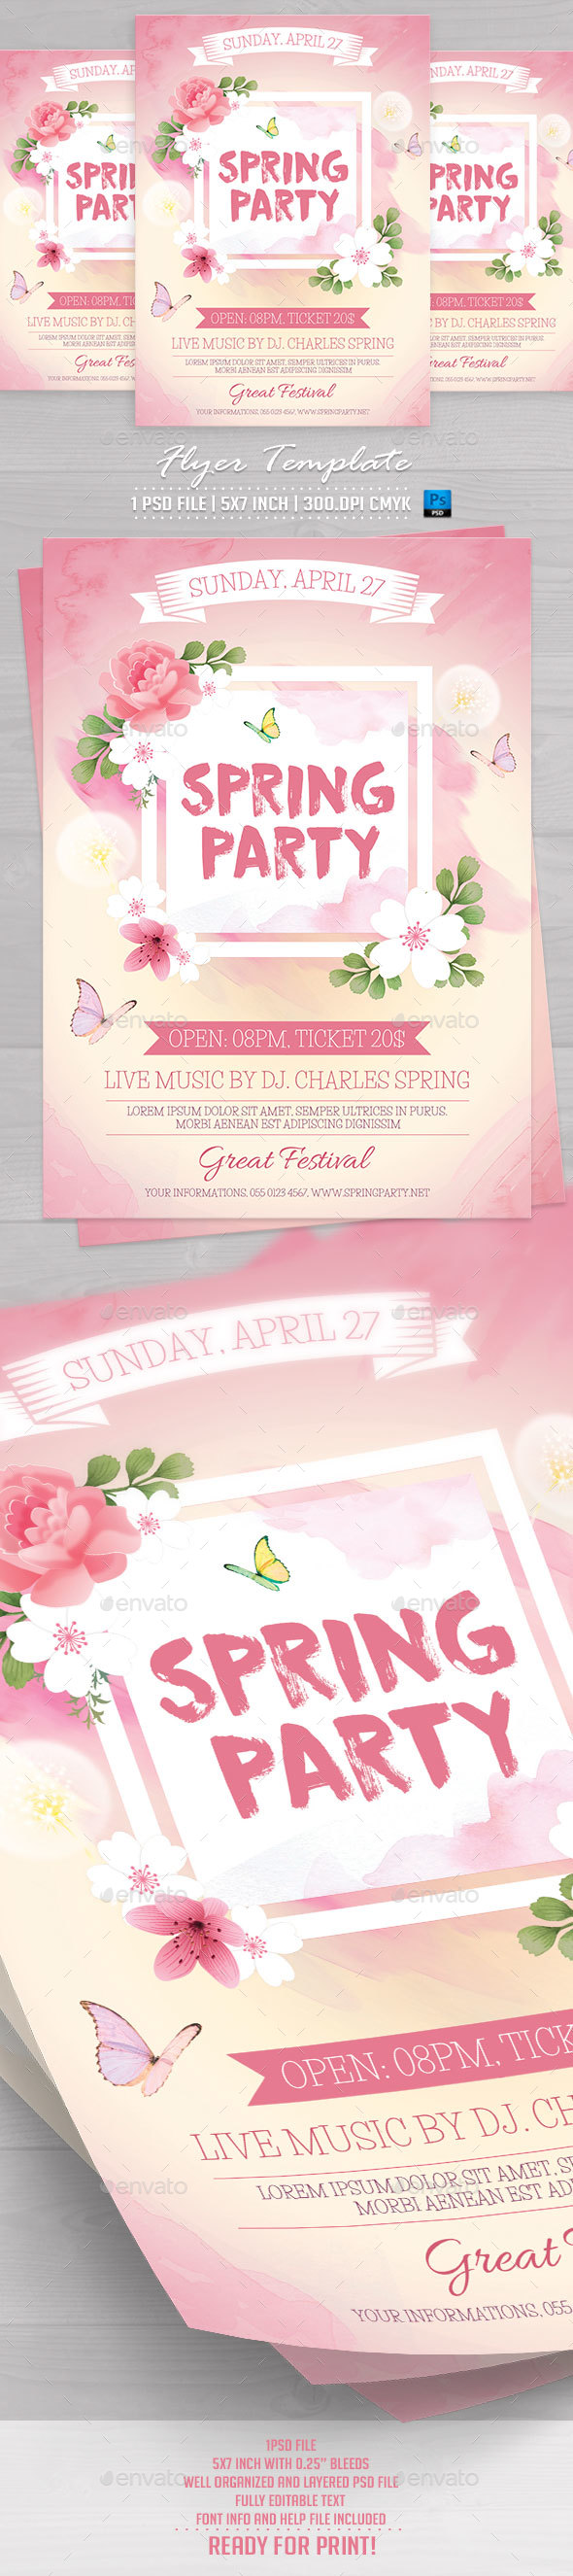 Spring Party Flyer Template v3 - Flyers Print Templates